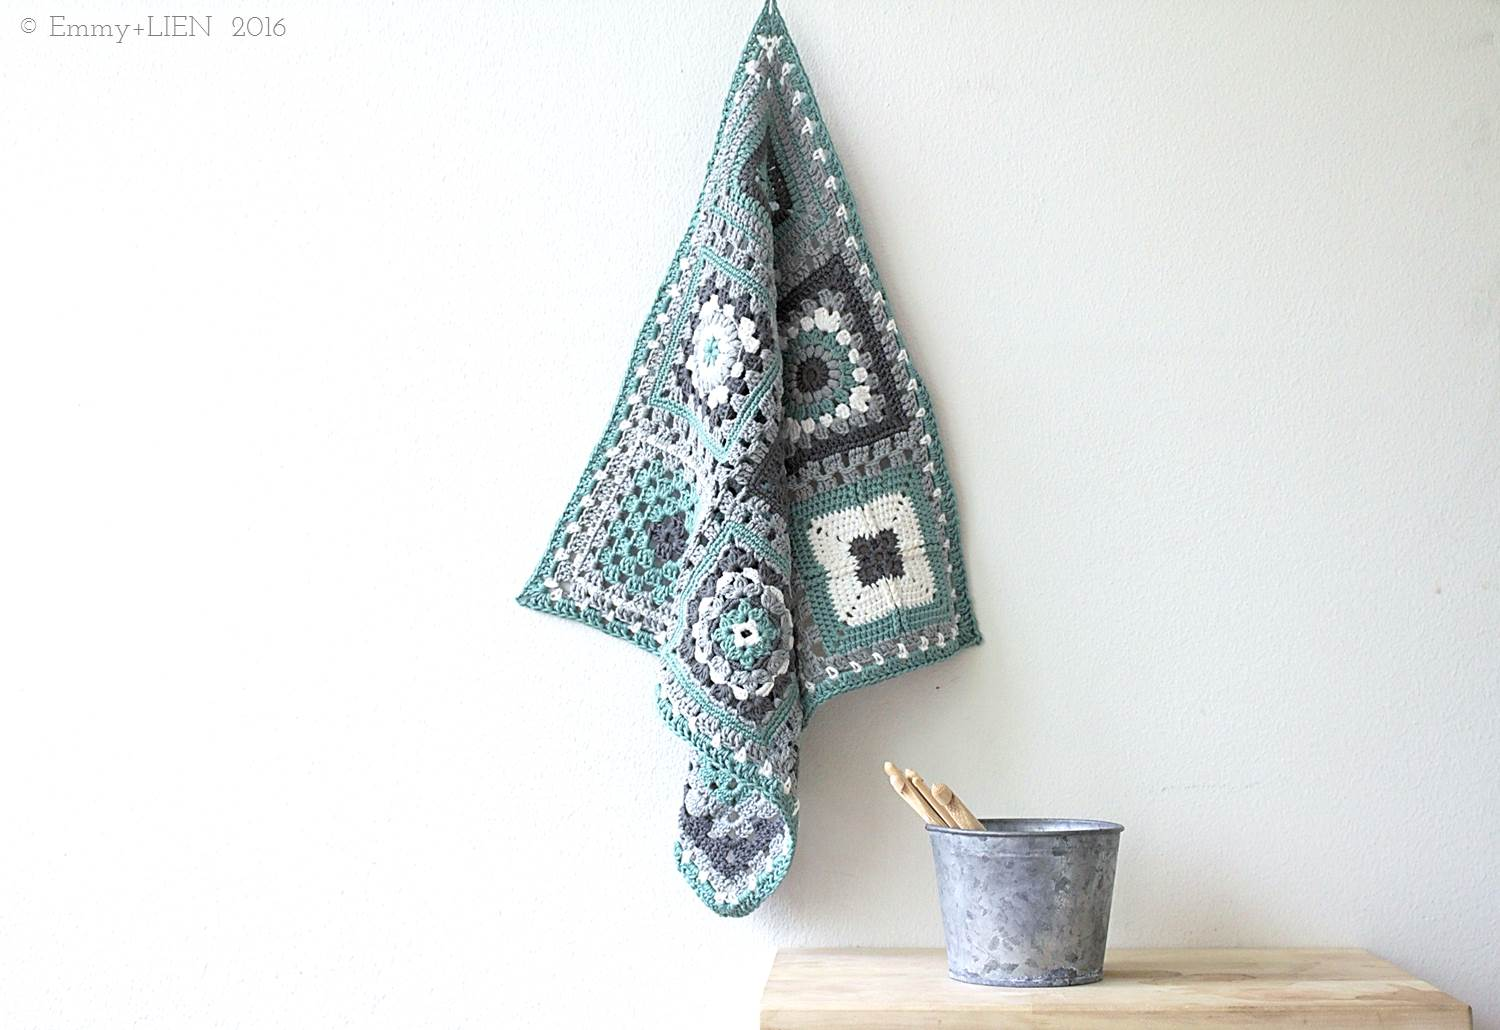 Crochet meets Patchwork Blanket by Eline Alcocer @ Emmy + LIEN | green block (link to all patterns in post)